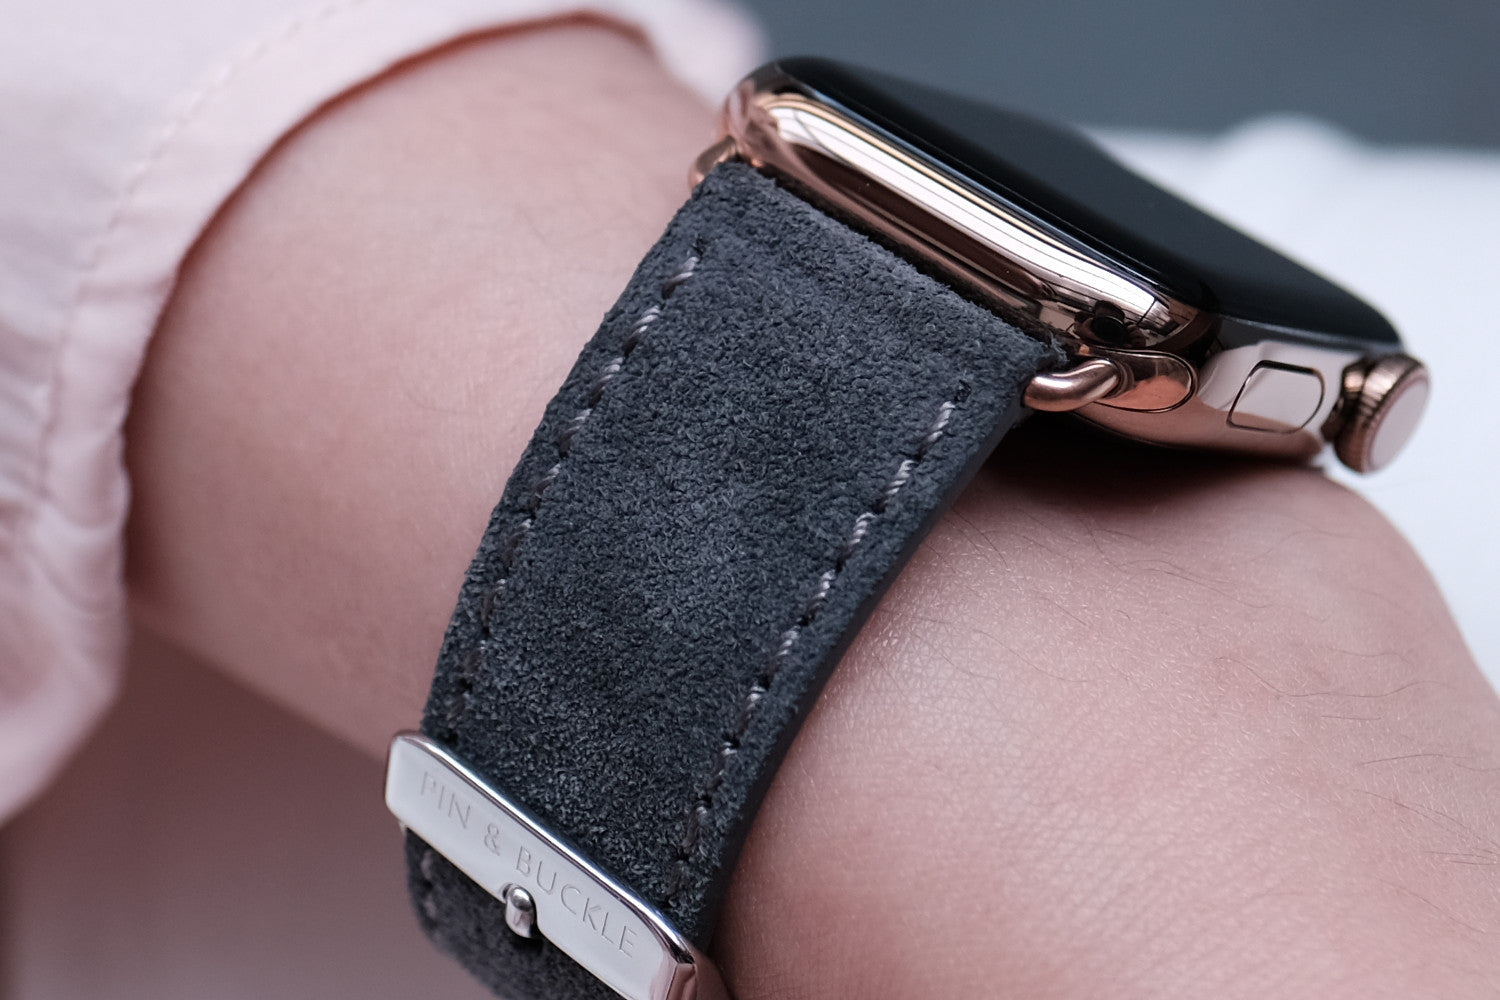 Pin and Buckle Apple Watch Straps - Velour - Suede Leather Apple Watch Strap - Pebble Grey - French Suede